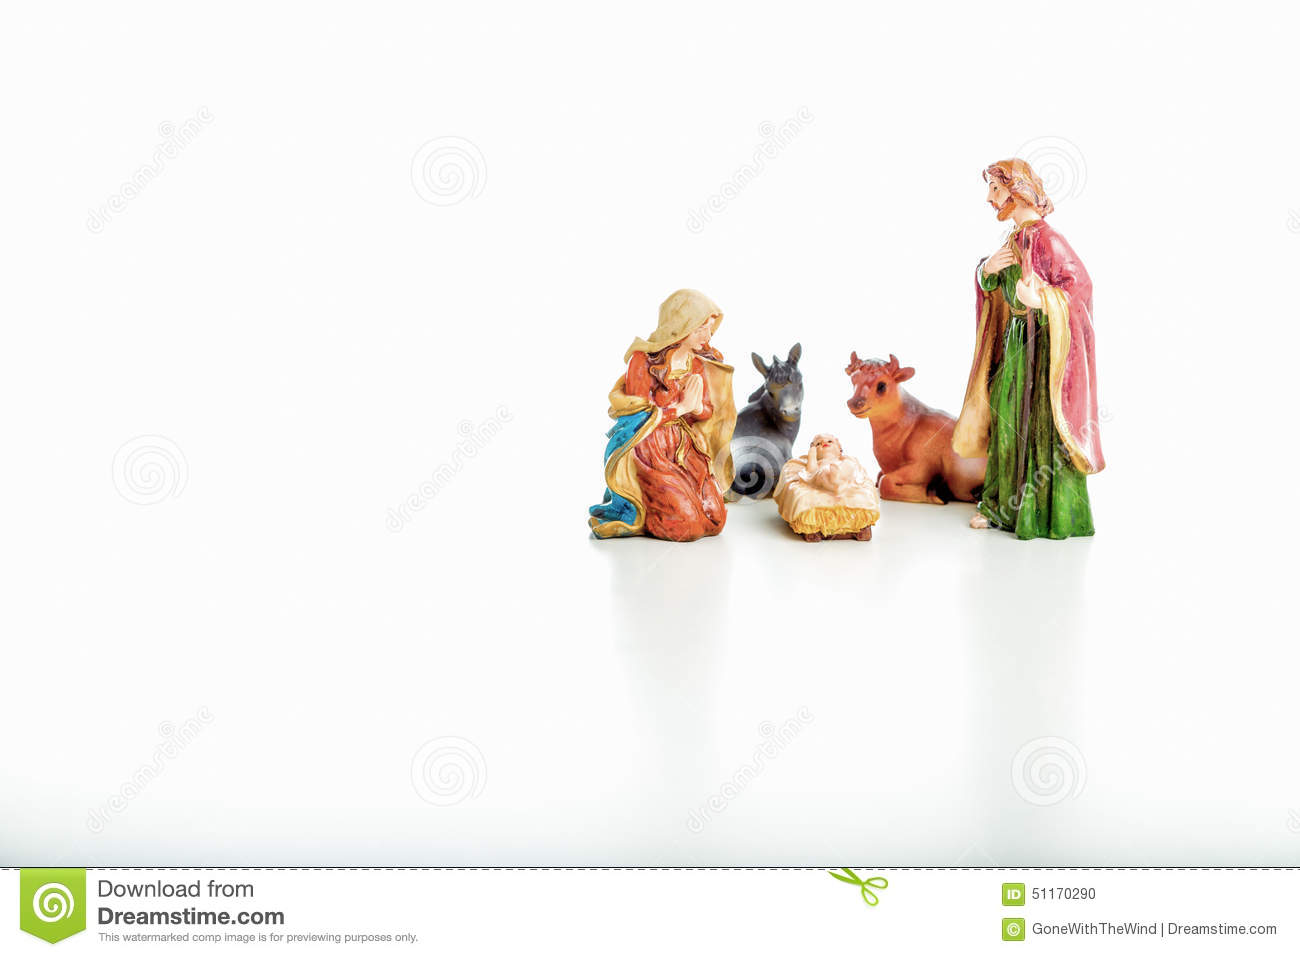 The Holy Family In A Christmas Crib Stock Photo - Image of presepio ...